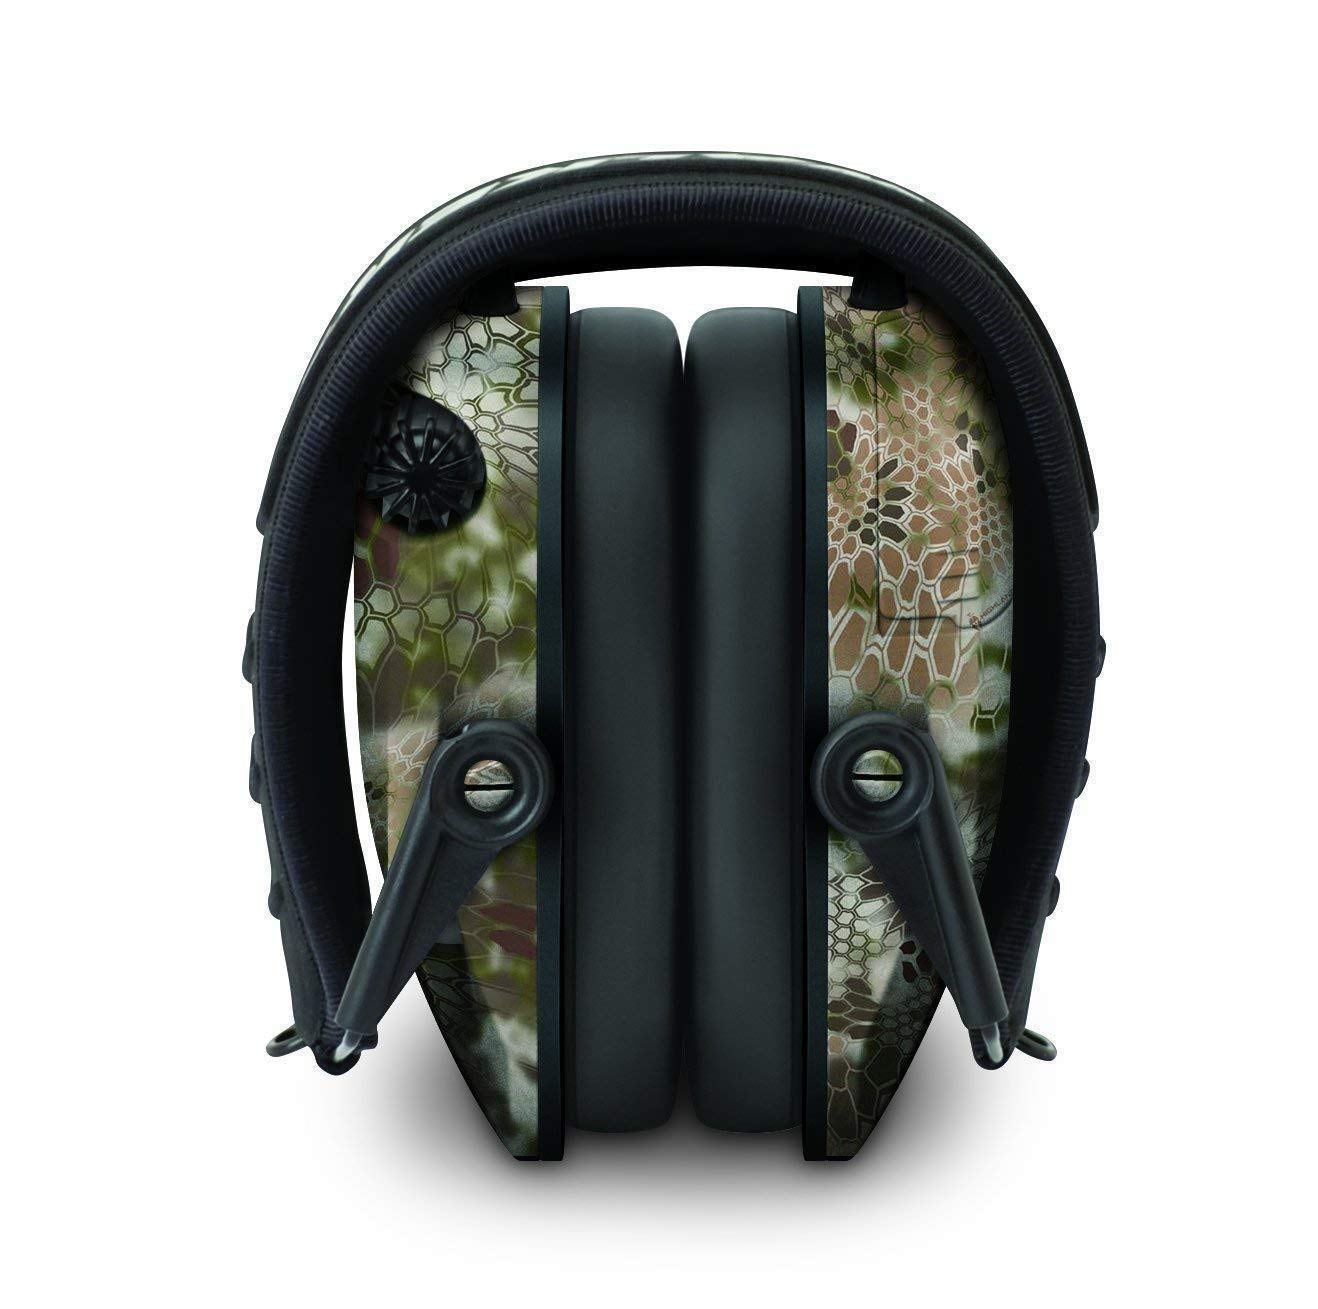 Walkers Razor Slim Electronic Hearing Protection Muffs with Sound Amplification and Suppression and Shooting Glasses Kit (Kryptek Camo) by Walkers (Image #5)